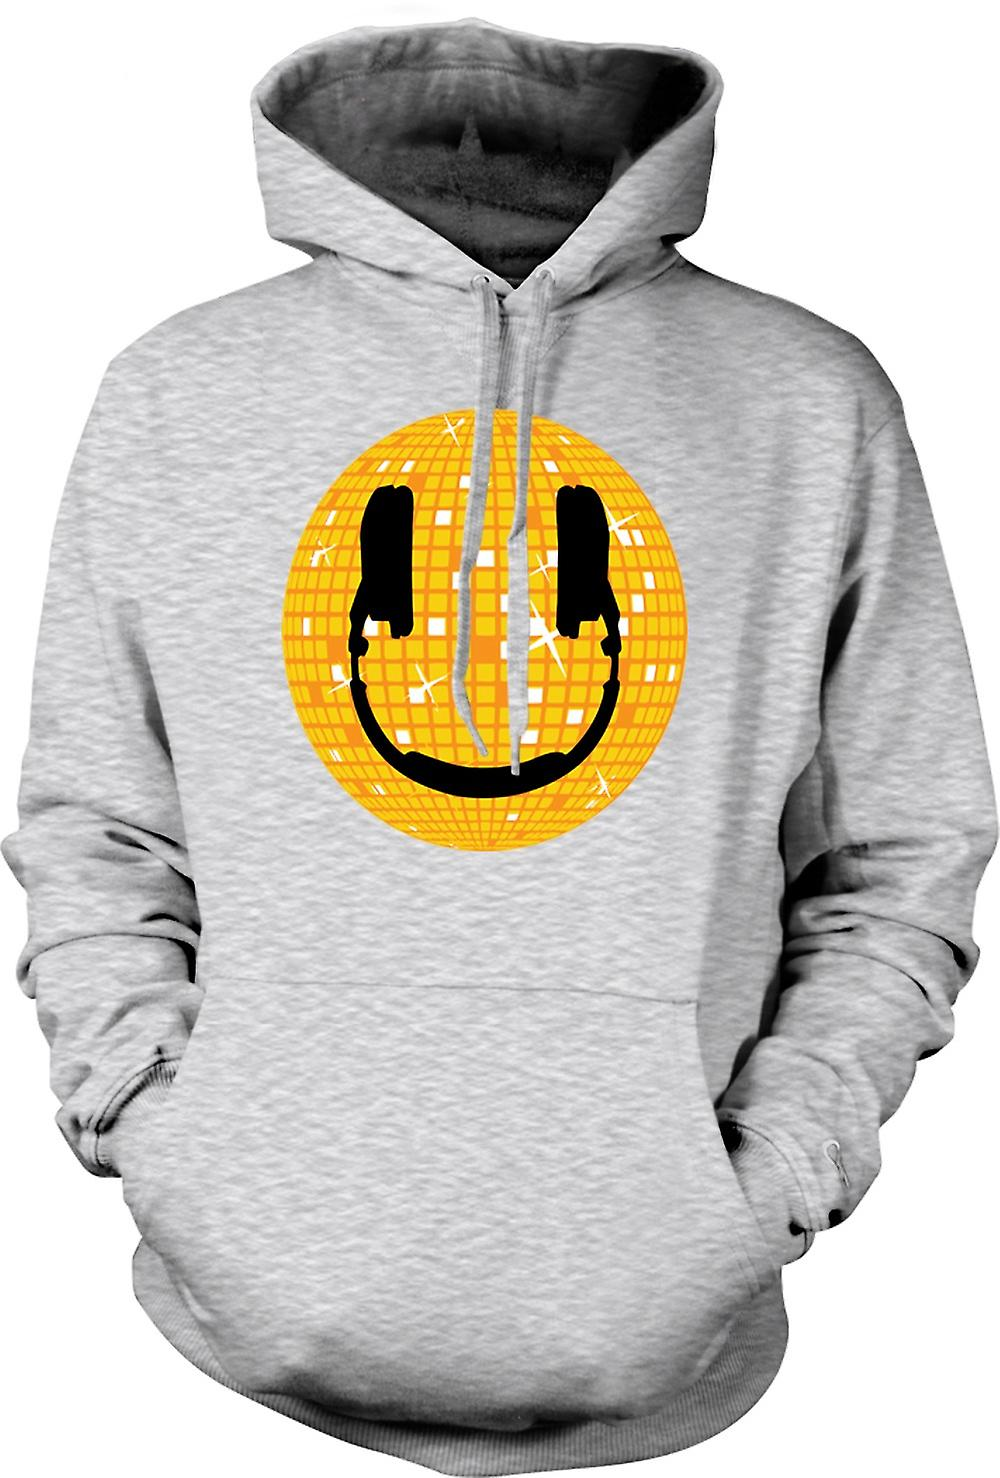 Mens Hoodie - Smiley Face - Disco Ball